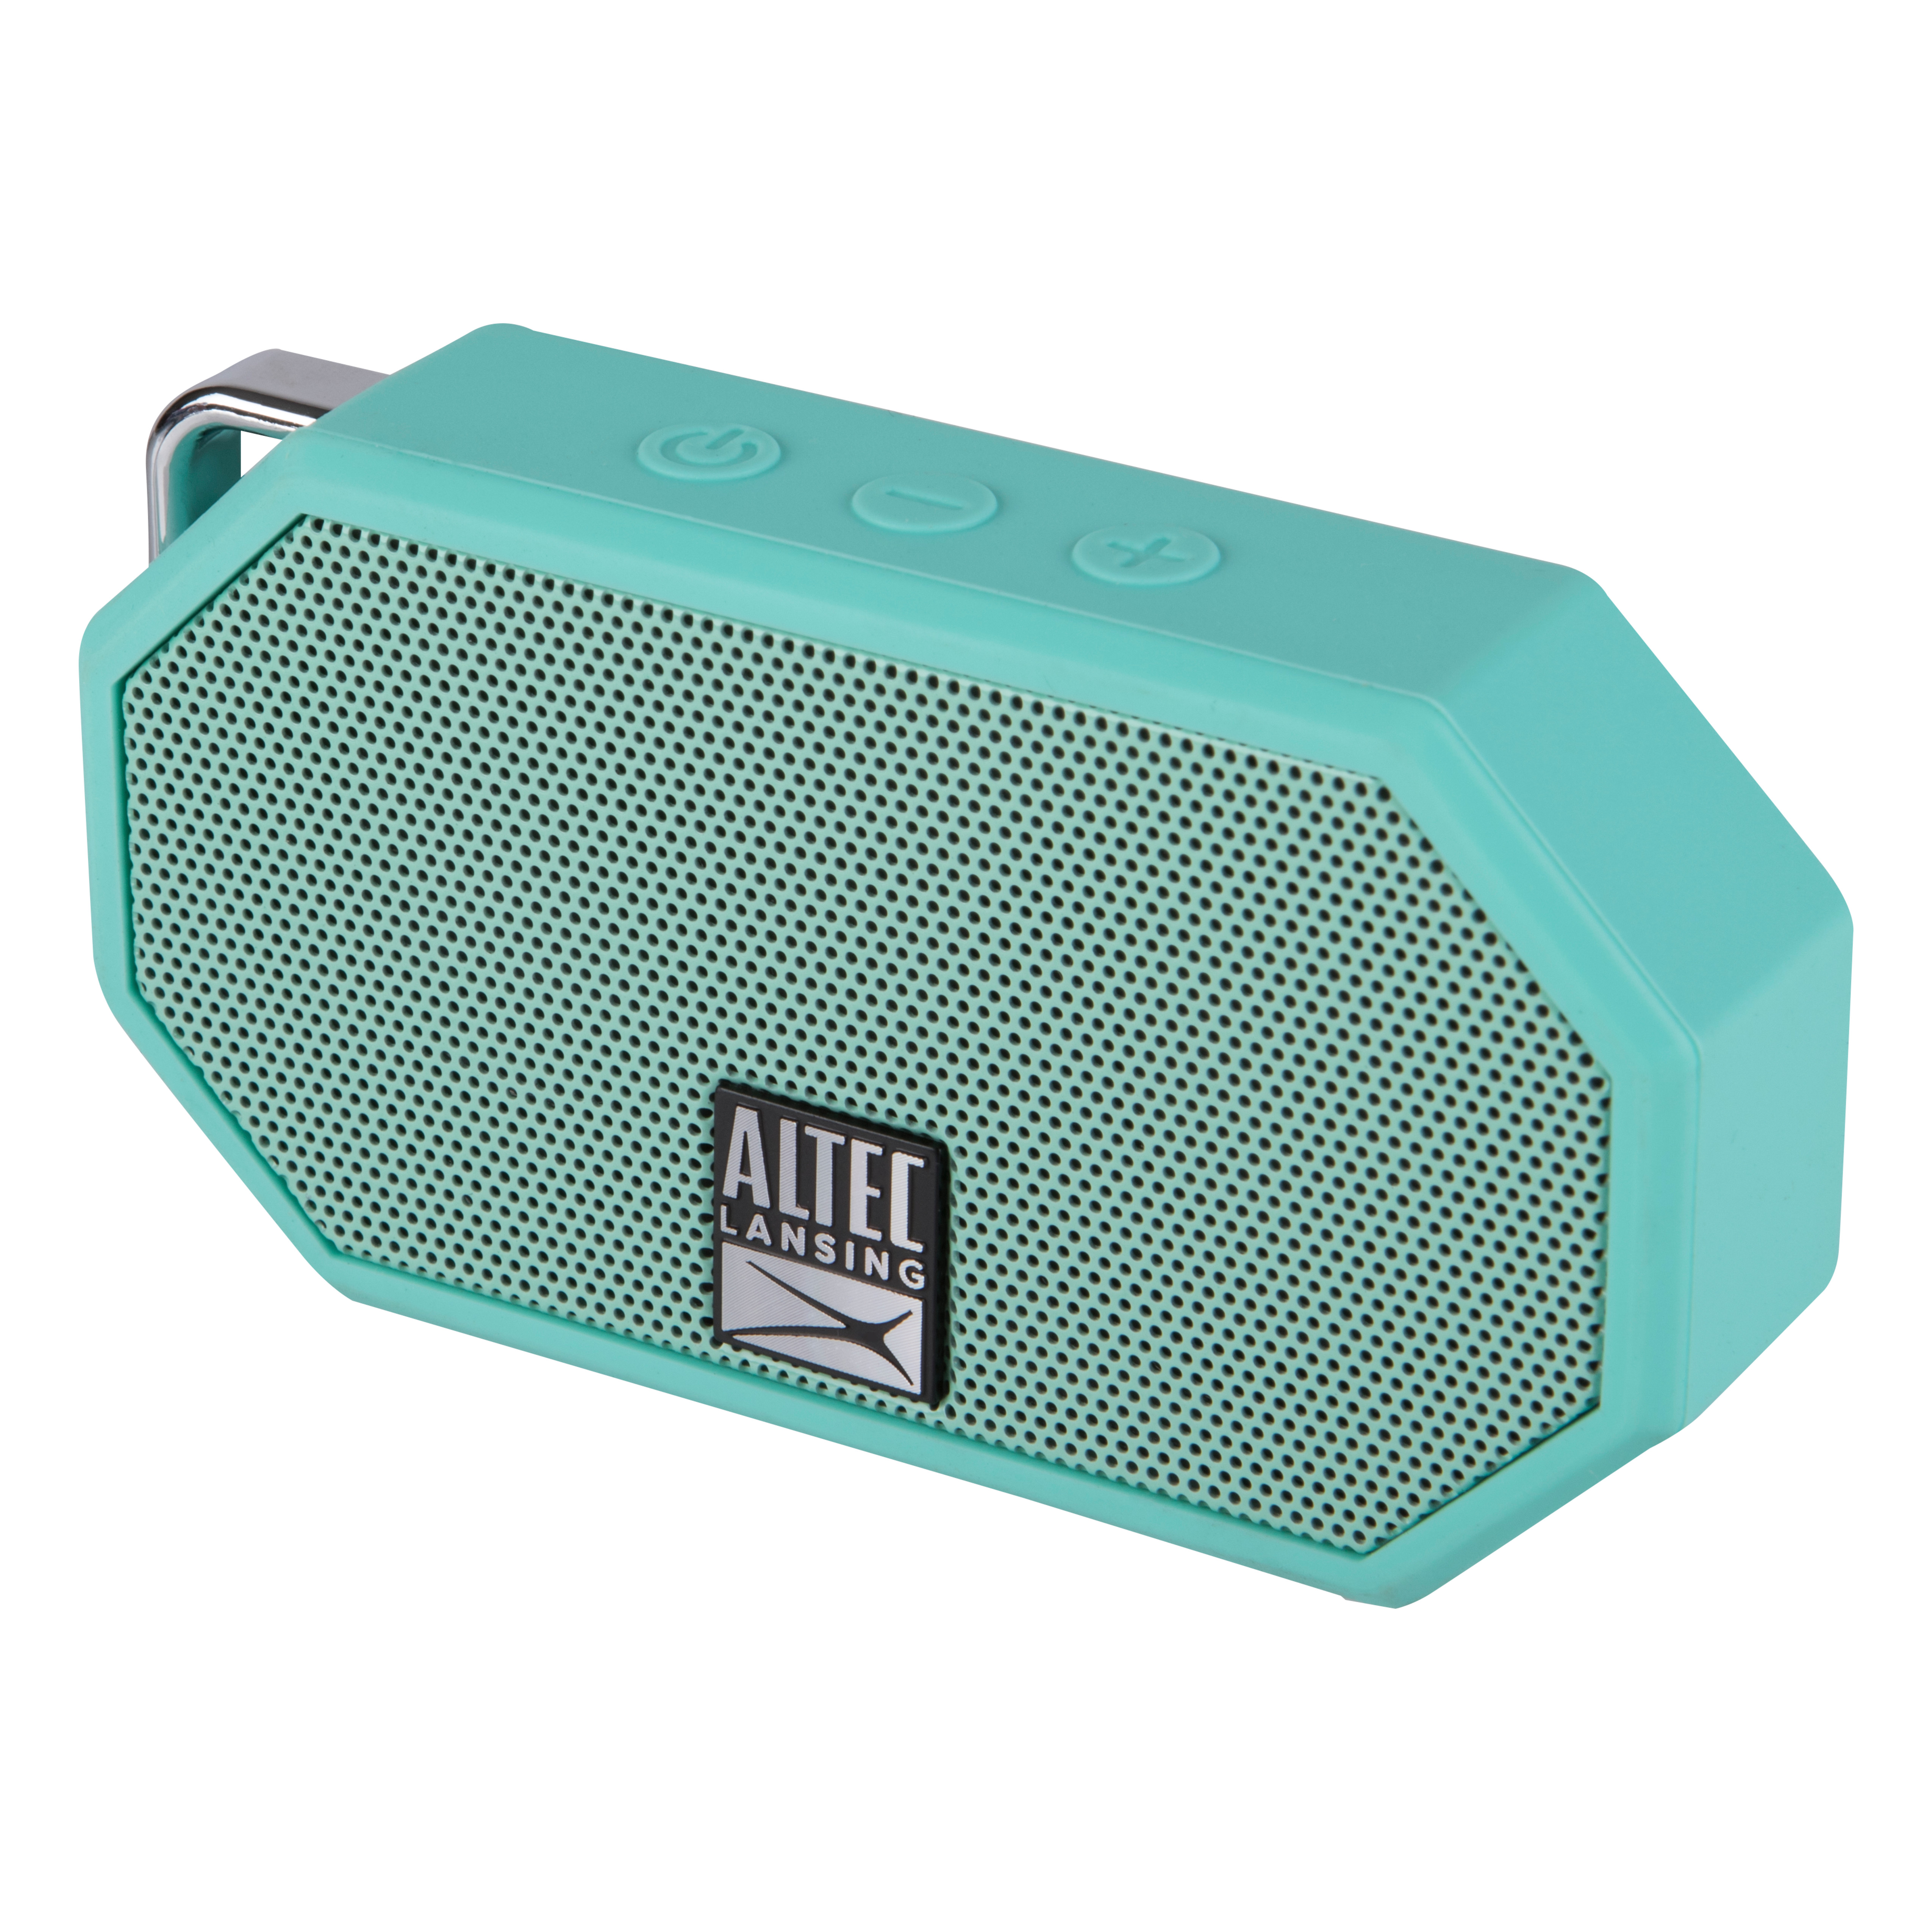 Altec Lansing Announces New Low Price for Baby Boom and Mini H2O